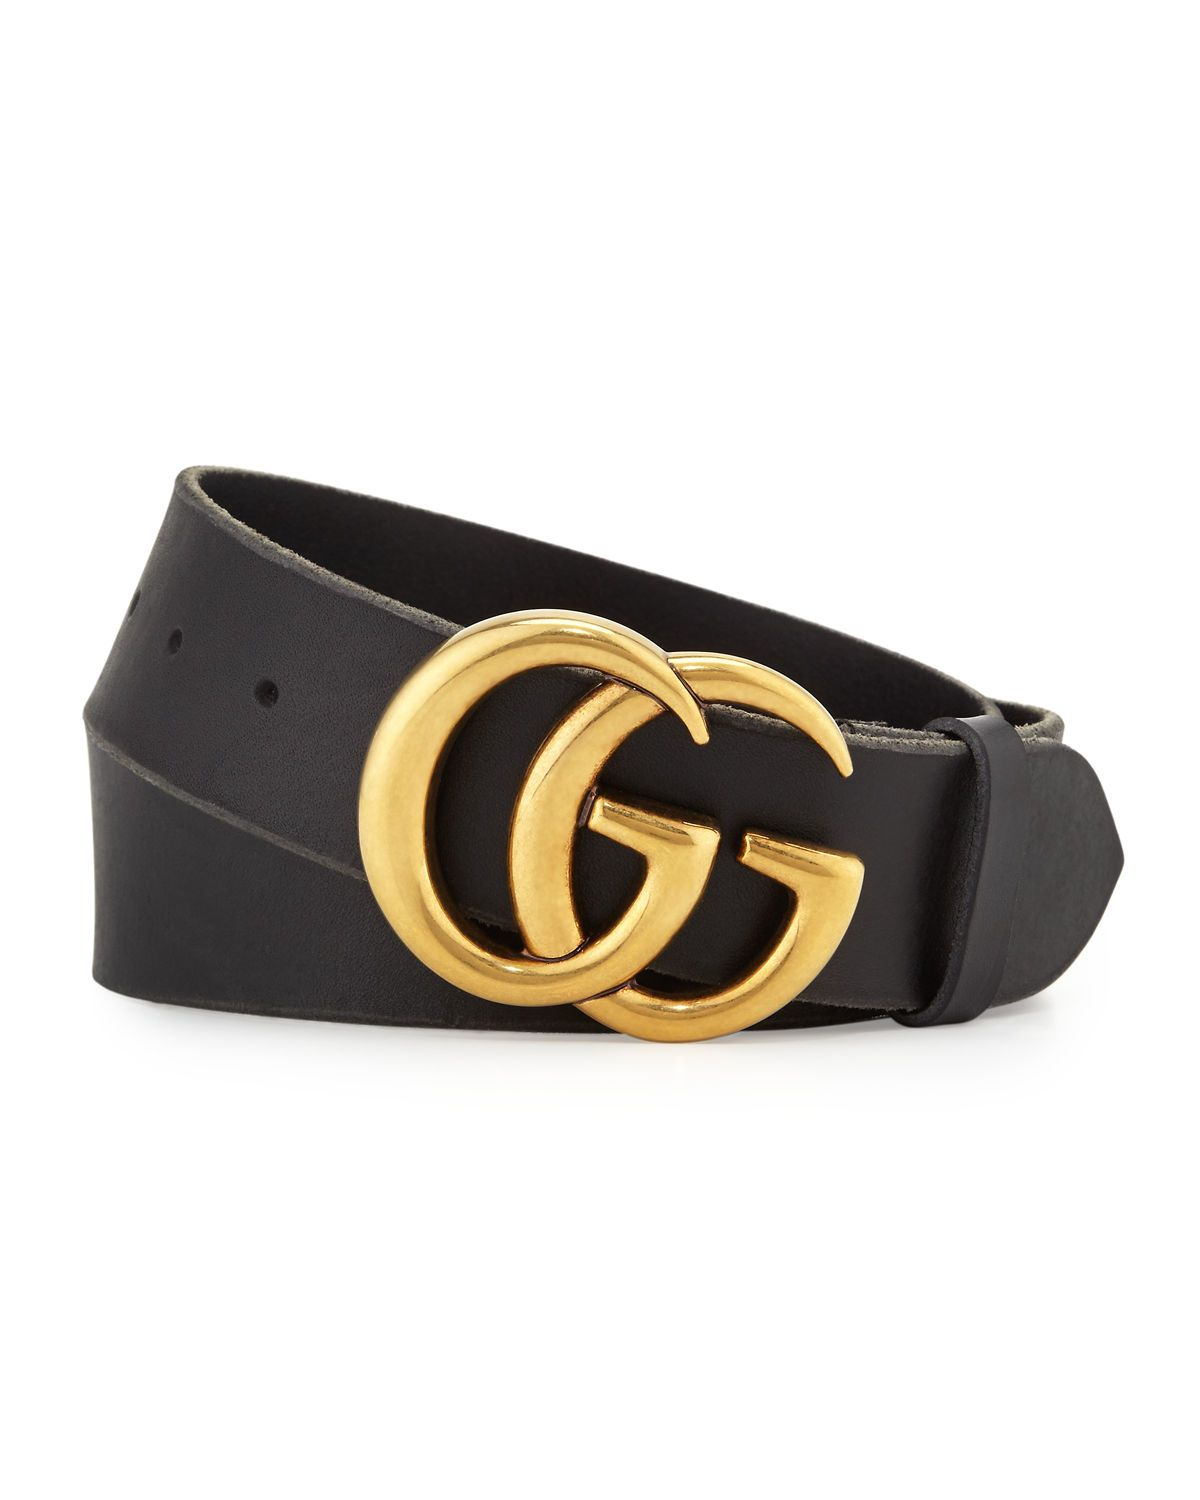 gucci belt with double g buckle id brand concept store. Black Bedroom Furniture Sets. Home Design Ideas